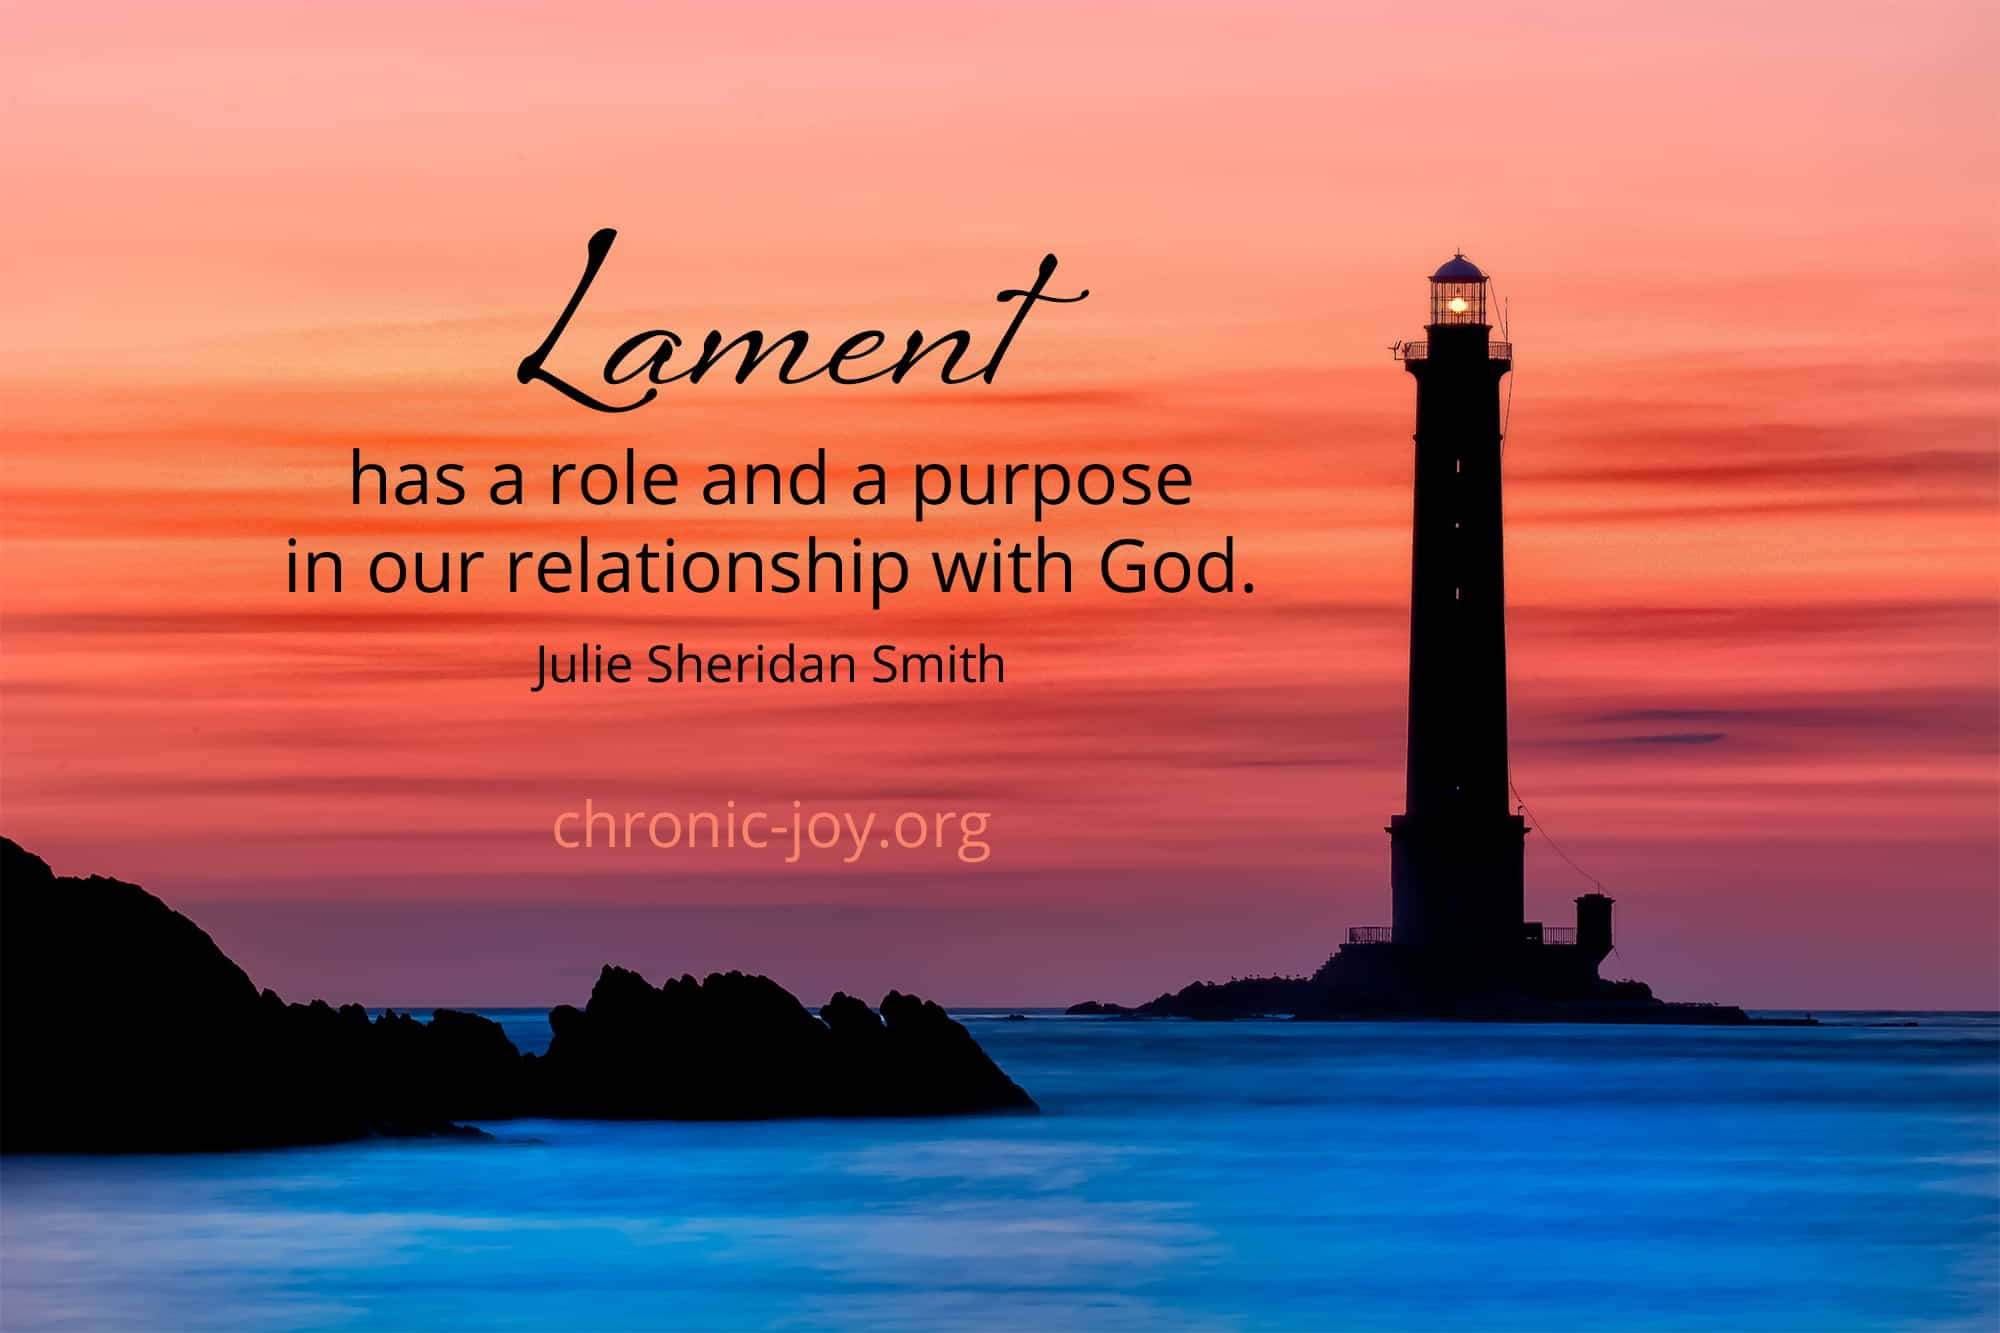 Lament has a purpose.